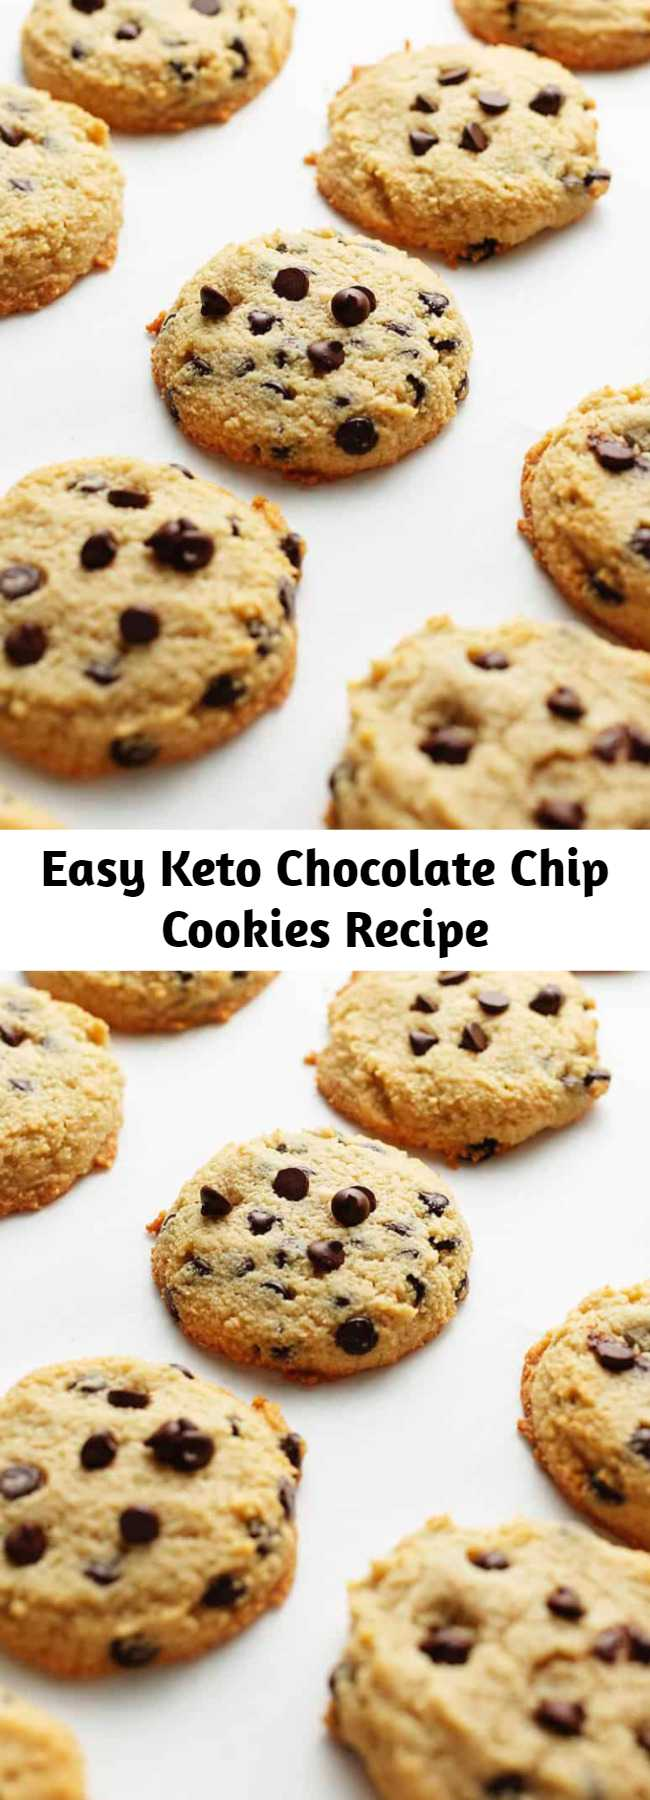 Easy Keto Chocolate Chip Cookies Recipe - These keto chocolate chip keto cookies are low carb, gluten free, amazingly delicious, and kid approved! Easy to make with only 1 bowl and 2 net carbs per cookie! These are truly no fuss. You can literally dump everything in the mixing bowl and they will turn out perfect every time.